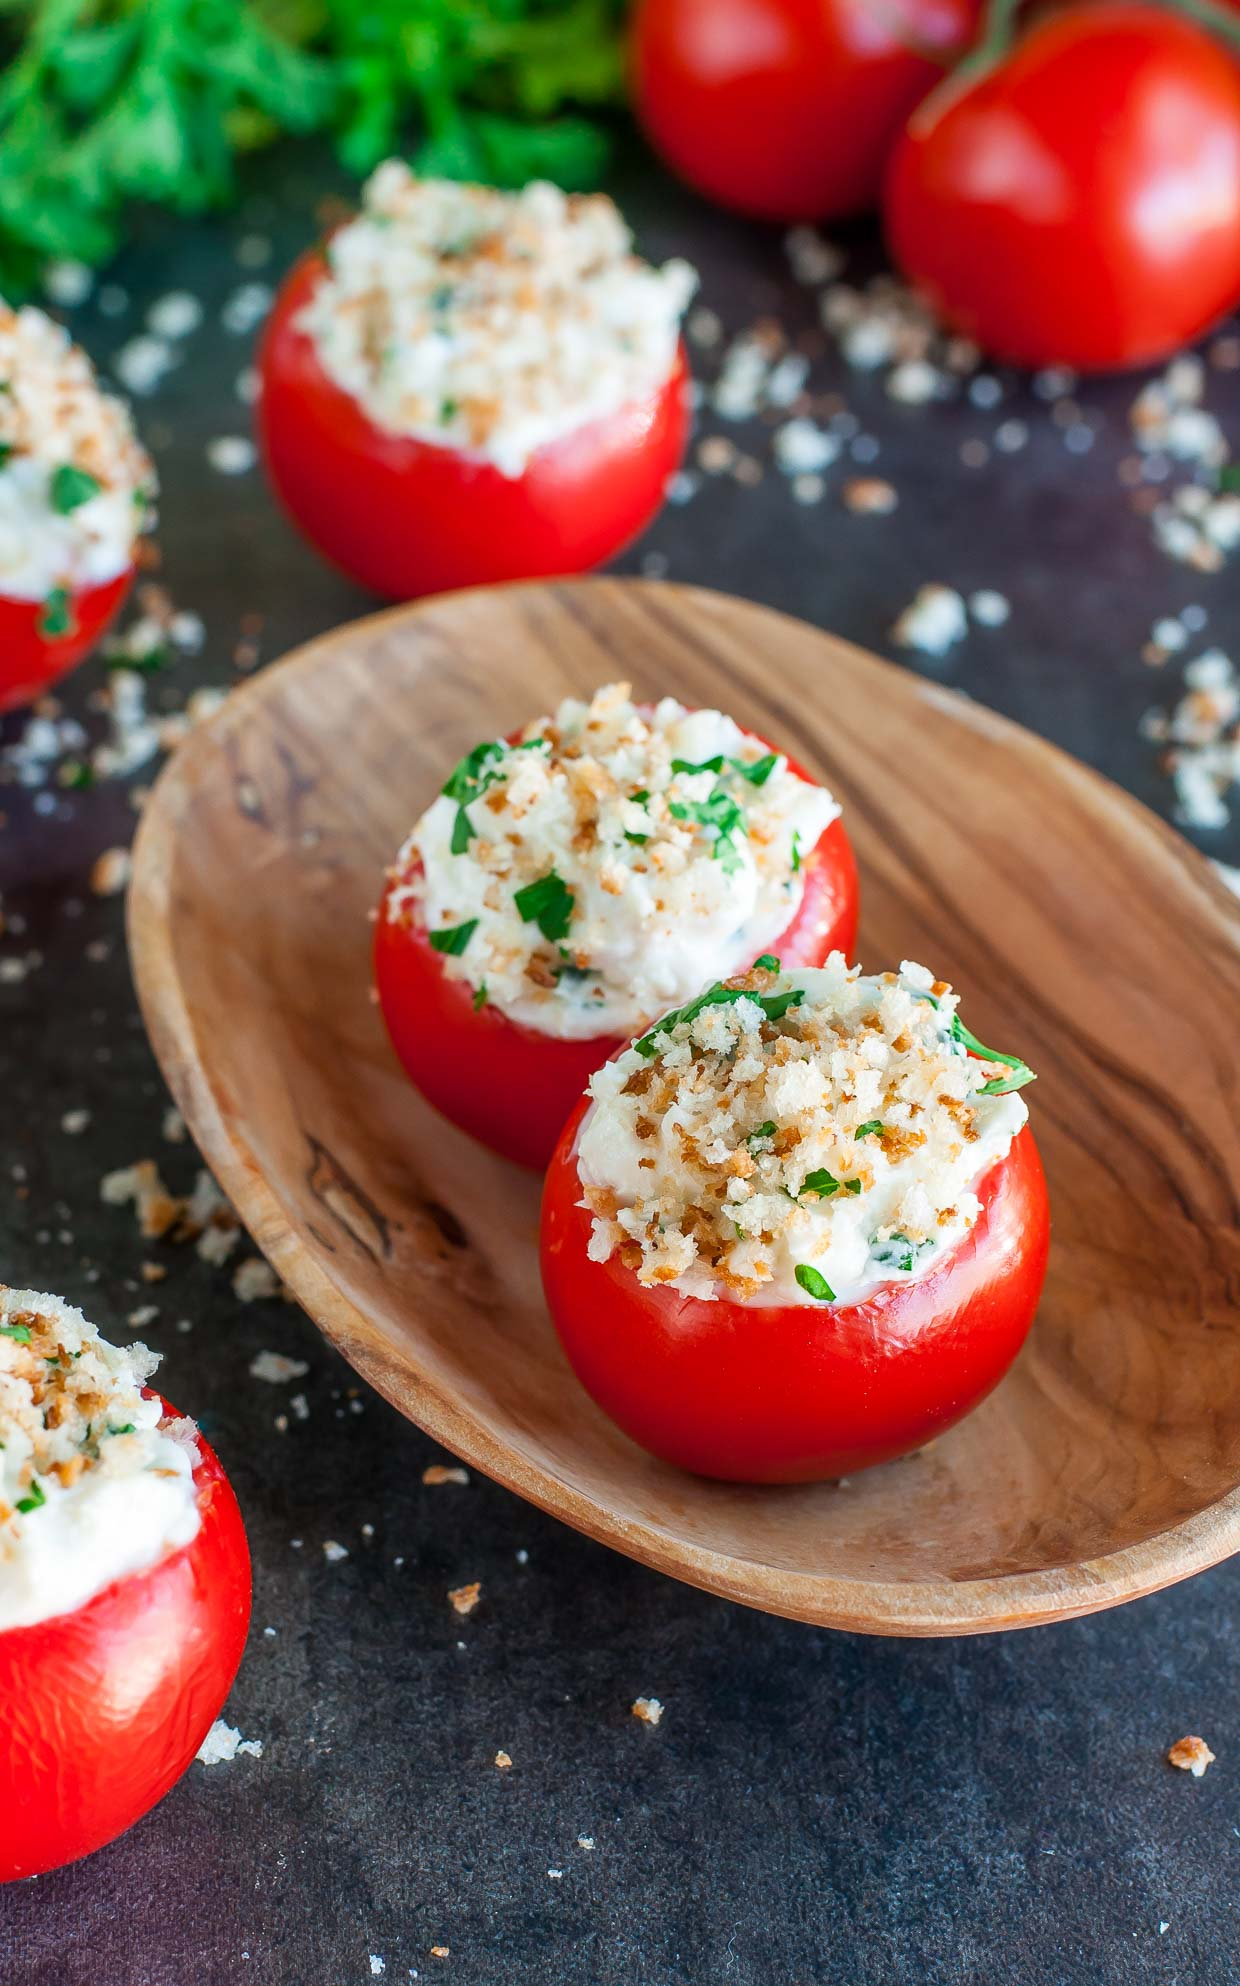 These 6-ingredient herbed Goat Cheese Stuffed Tomatoes are healthy, delicious, and a total breeze to throw together.